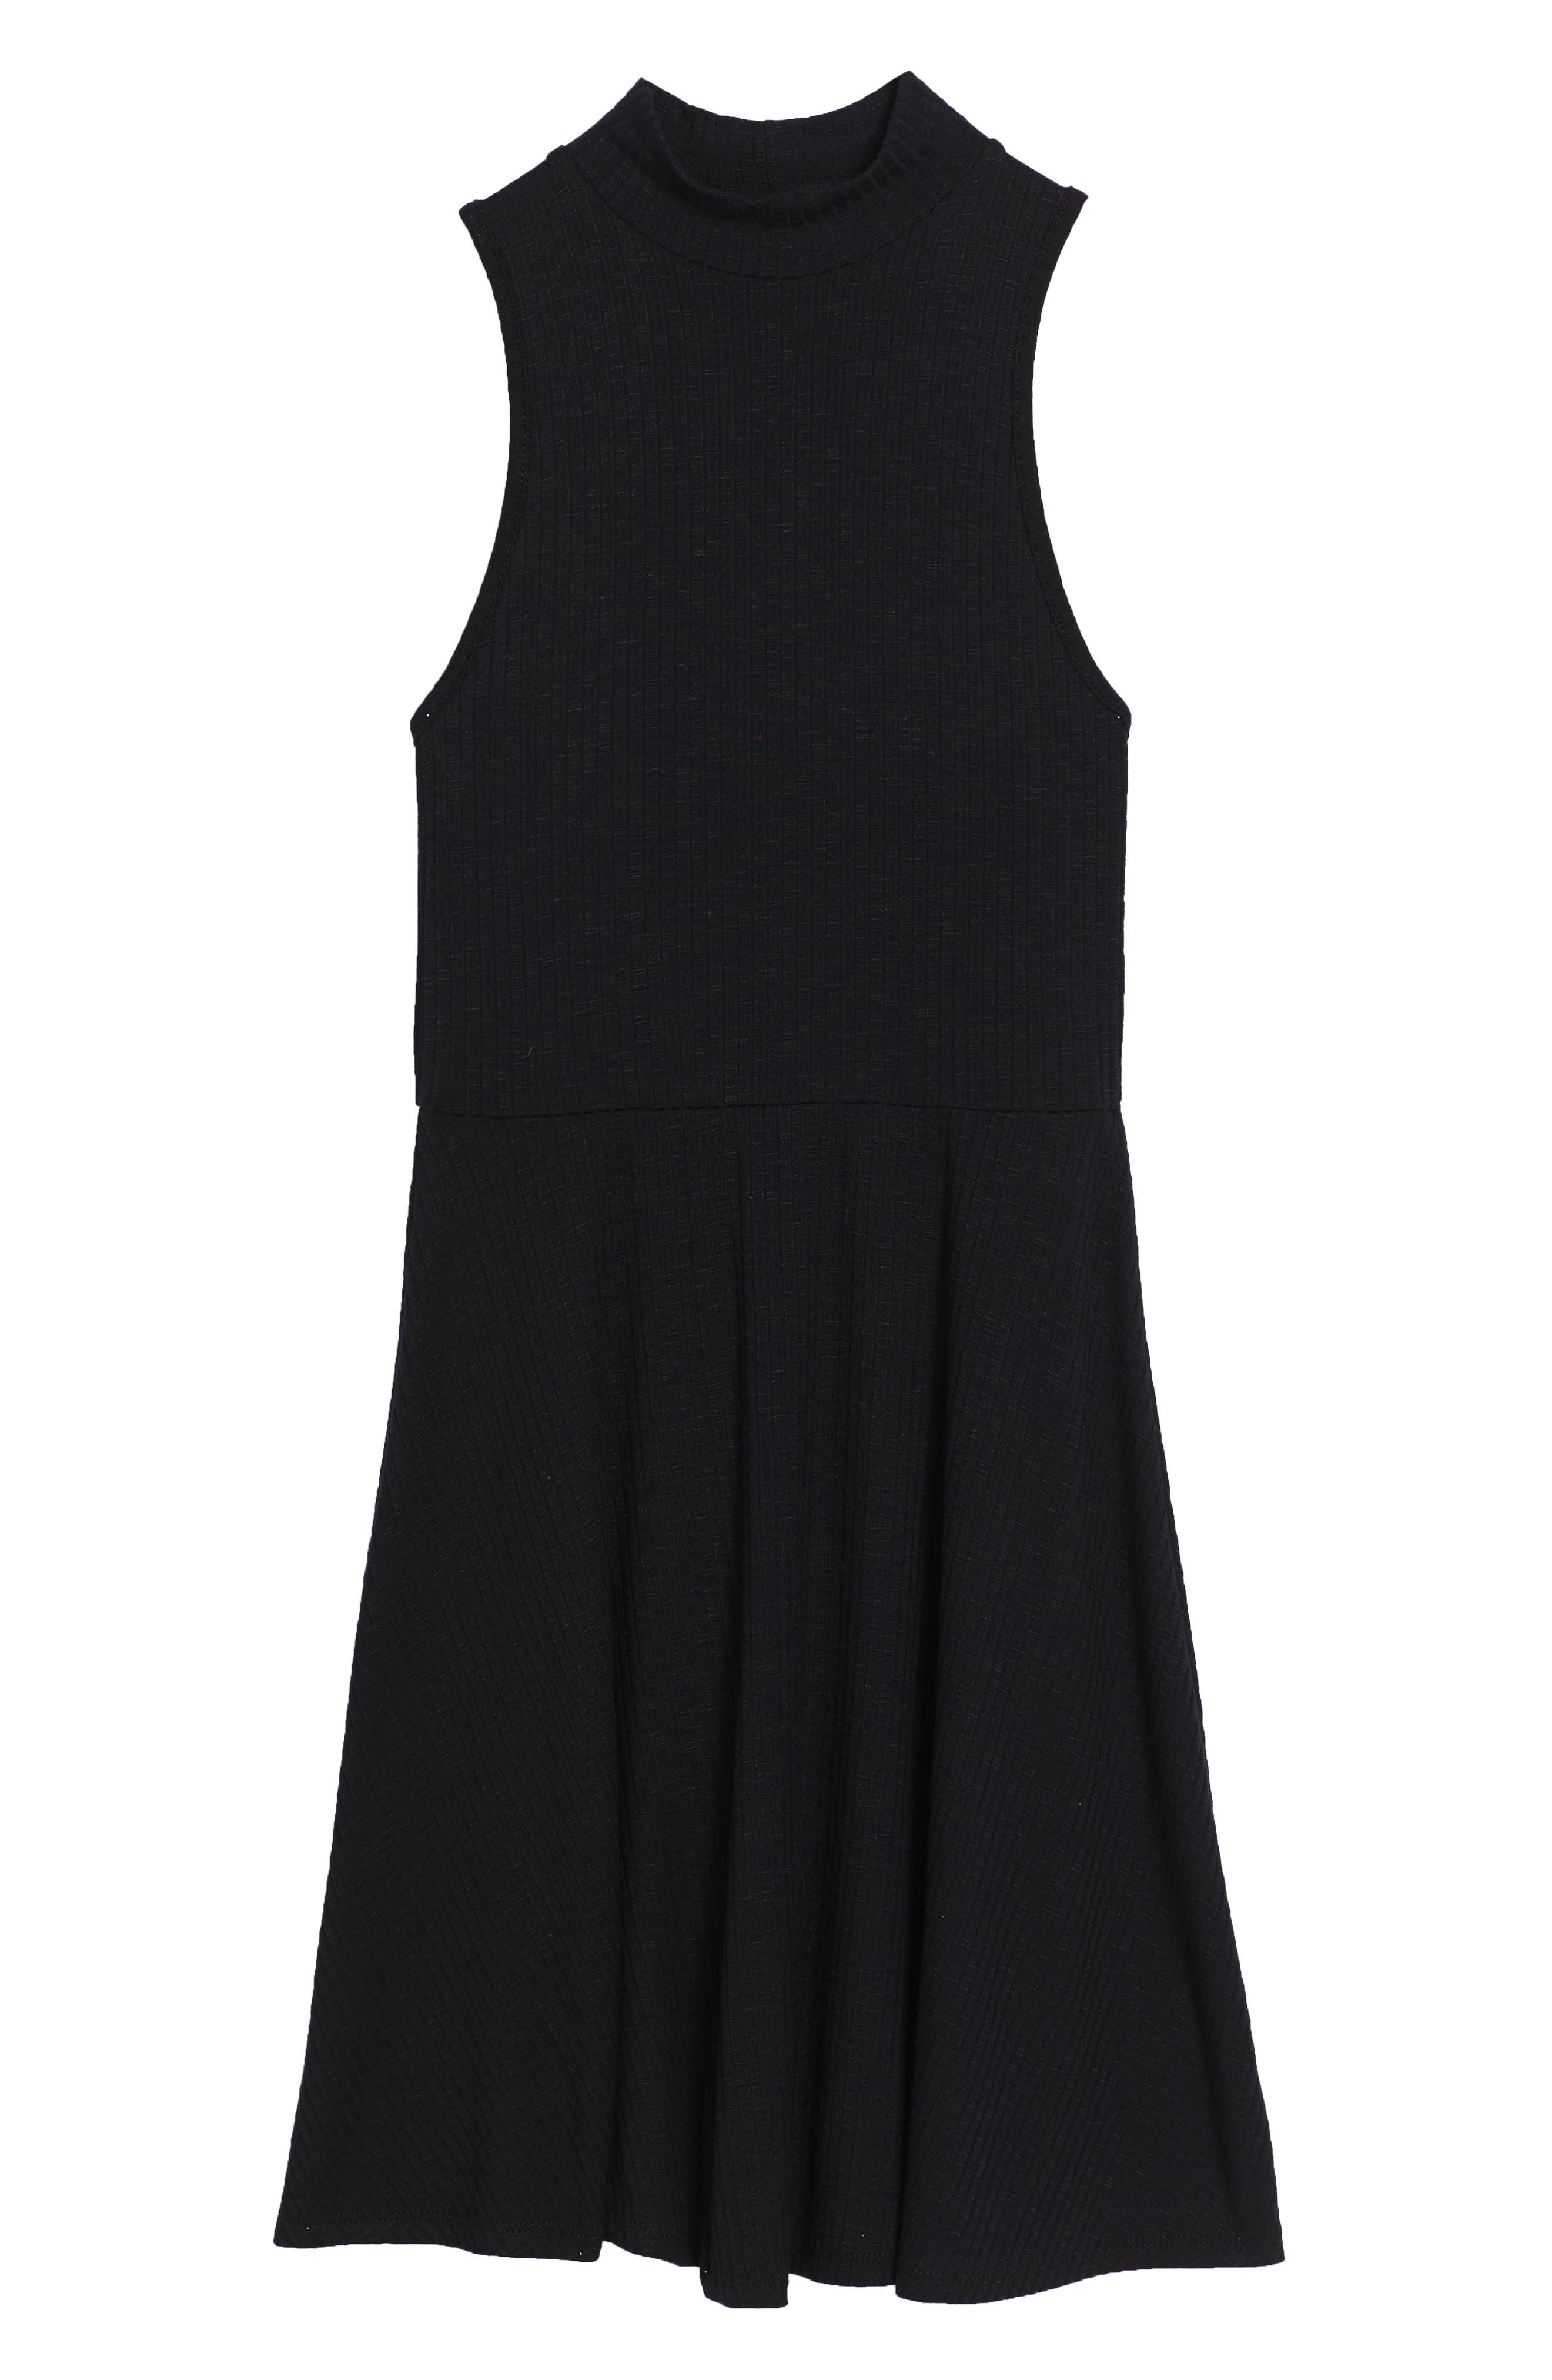 Tucker + Tate Ribbed Mock Neck Dress (Big Girls)